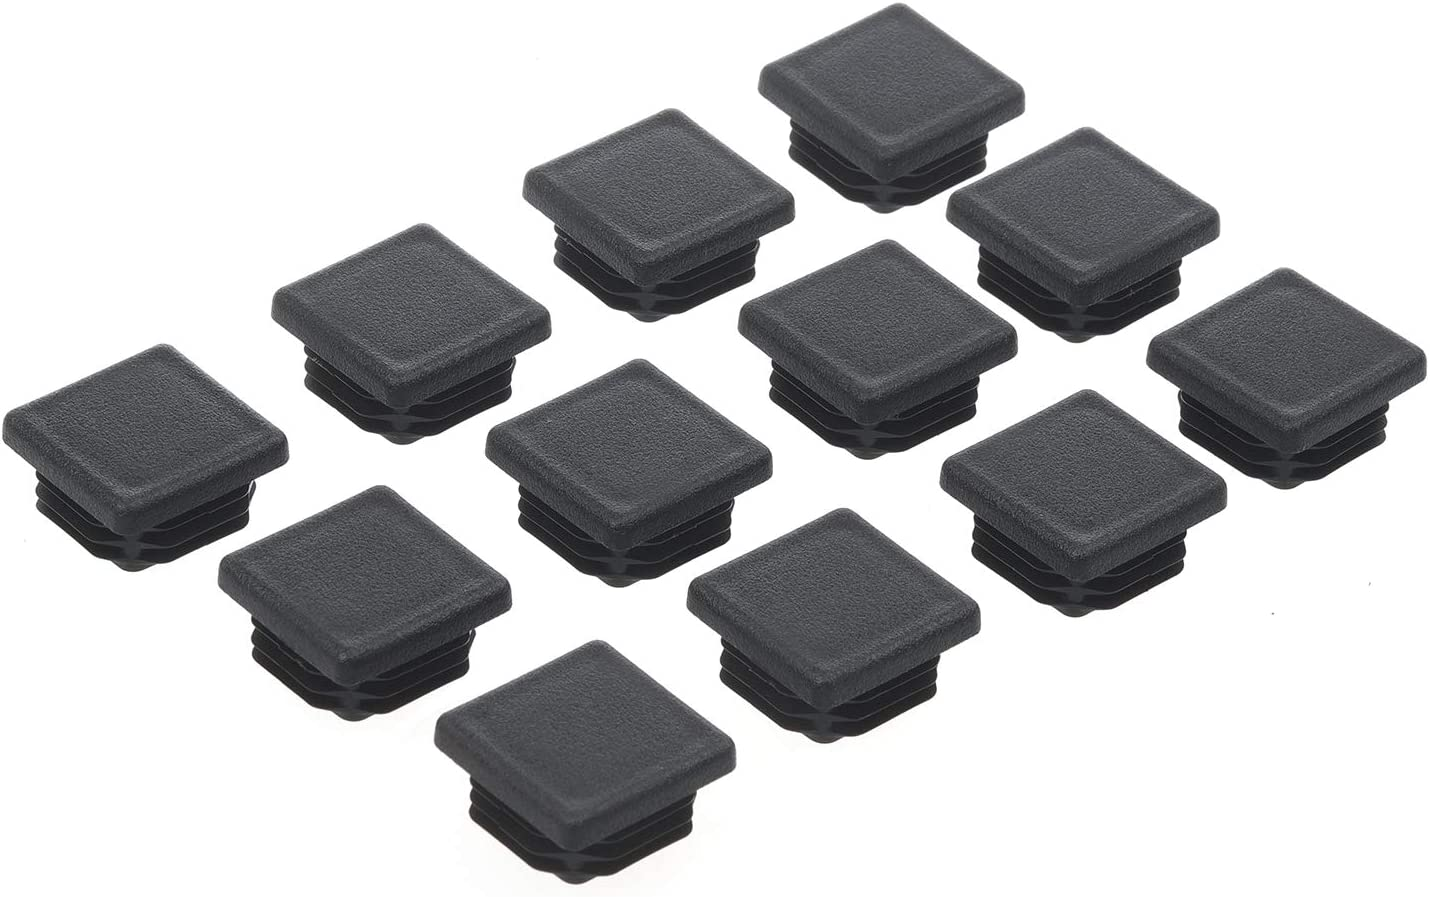 1-1/4 Inch Square Plastic Plug, Tubing Post End Cap 1-1/4 x 1-1/4 inch, Chair Glide Insert Finishing Plug, Great for Fencing Posts, Furniture End Caps, Fitness Equipment End Caps and More (12 Packs)